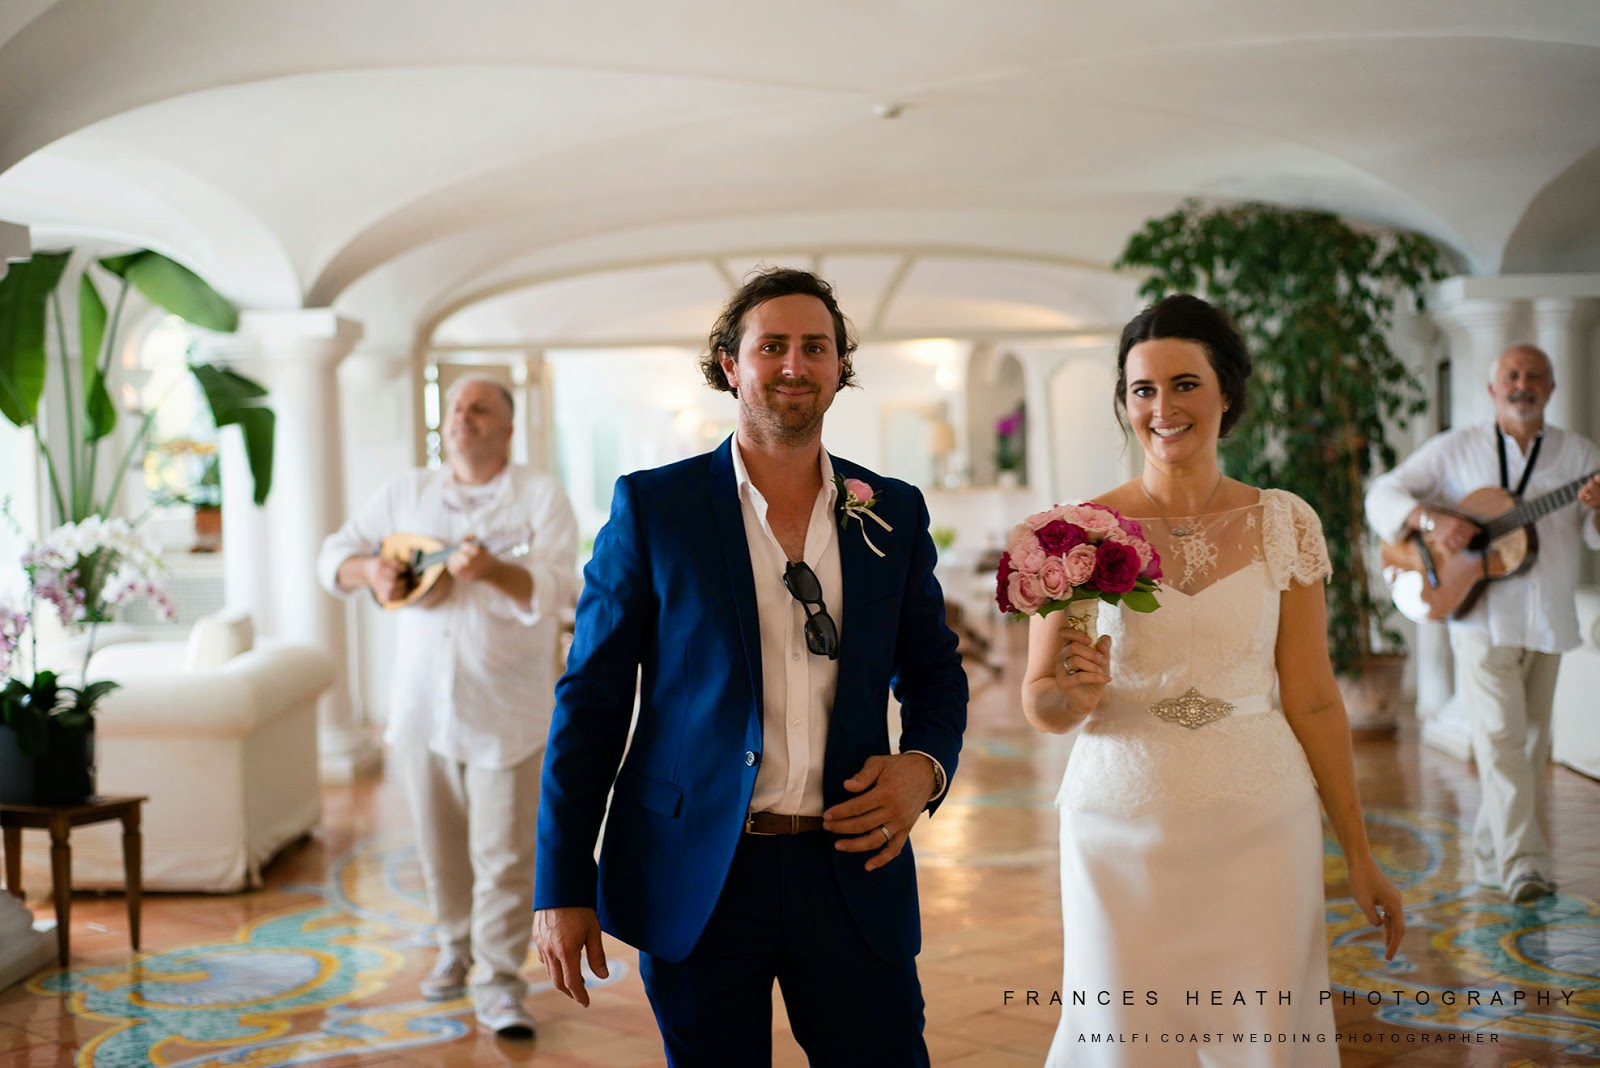 Wedding at the Hotel Marincanto in Positano